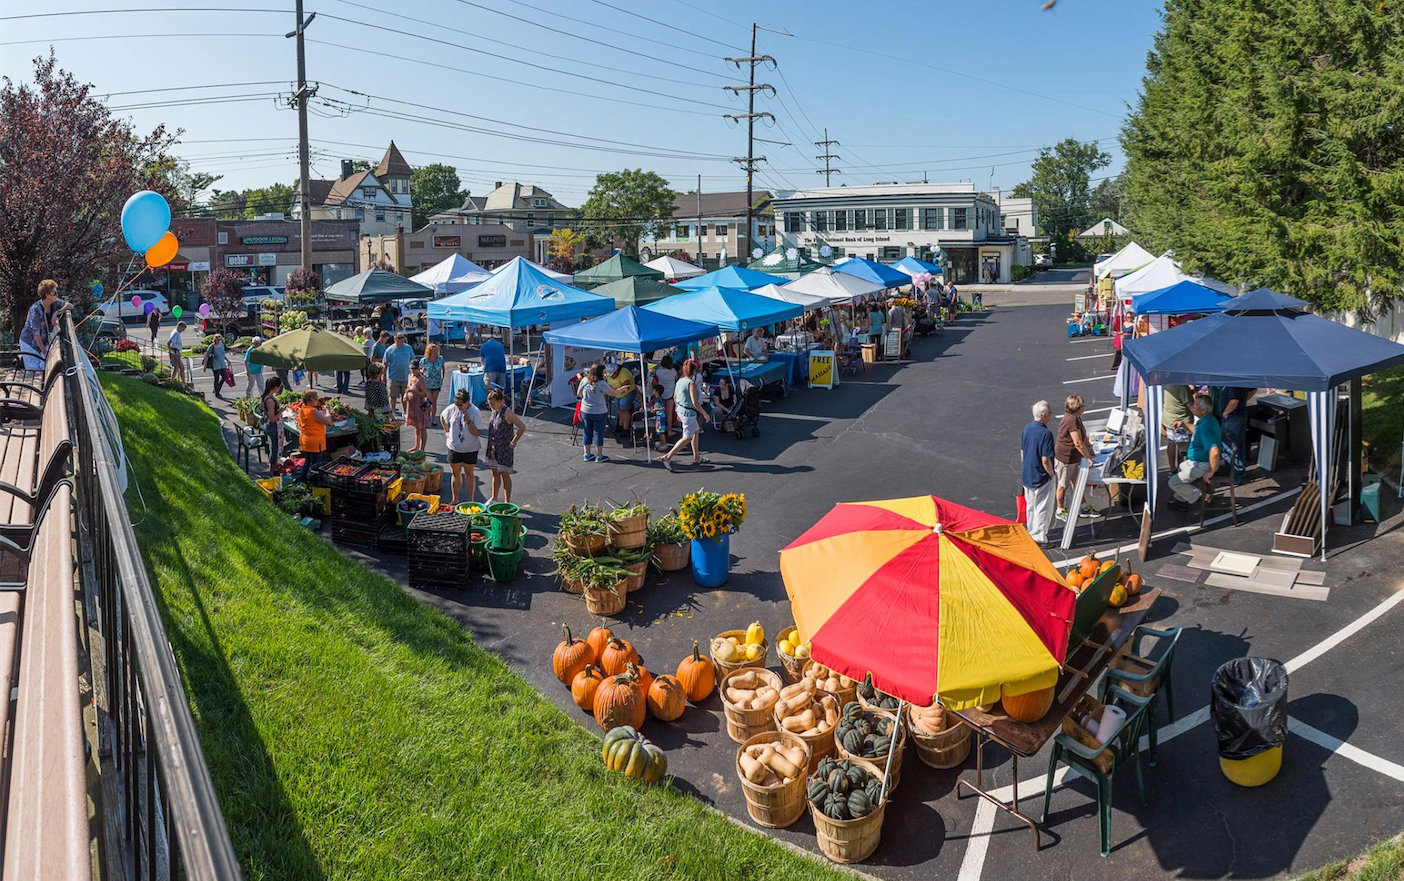 Fall Fest is a great chance for residents to sample local businesses